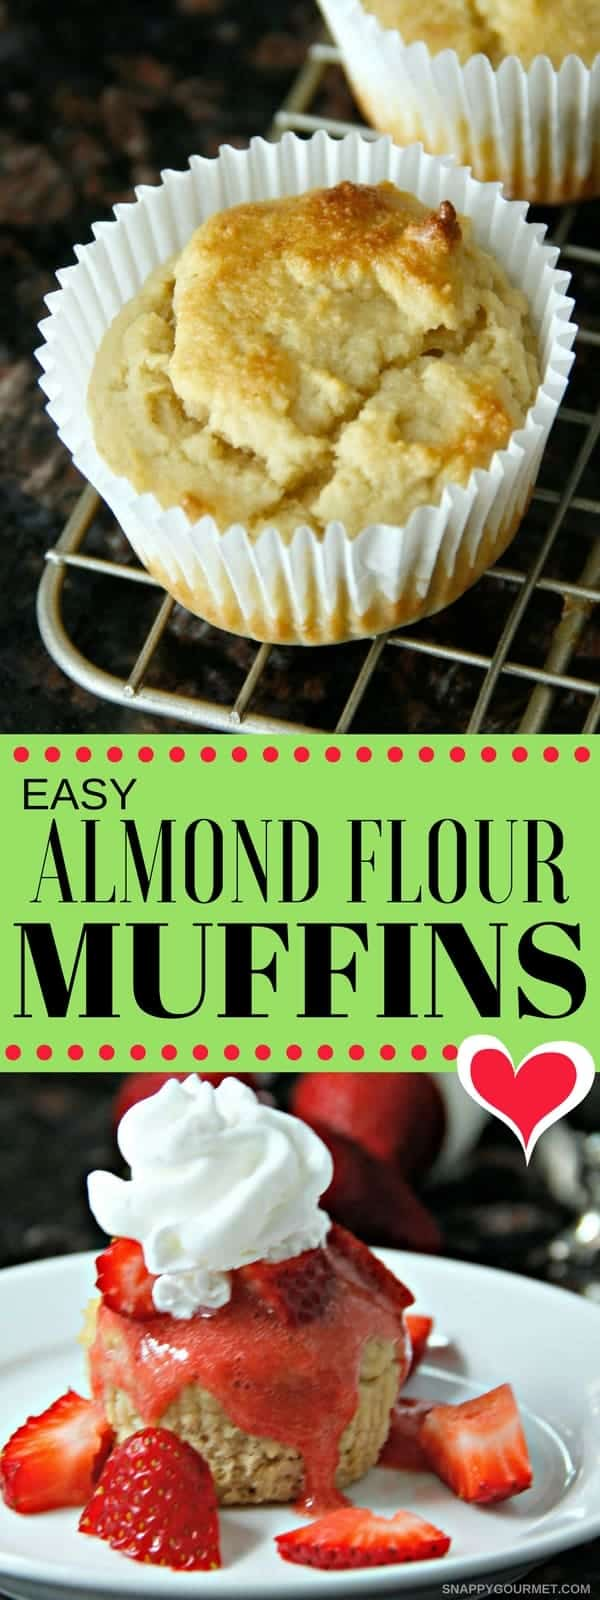 Easy Almond Flour Muffins Recipe - low carb and gluten free breakfast option. #AlmondFlour #LowCarb #Breakfast #SnappyGourmet